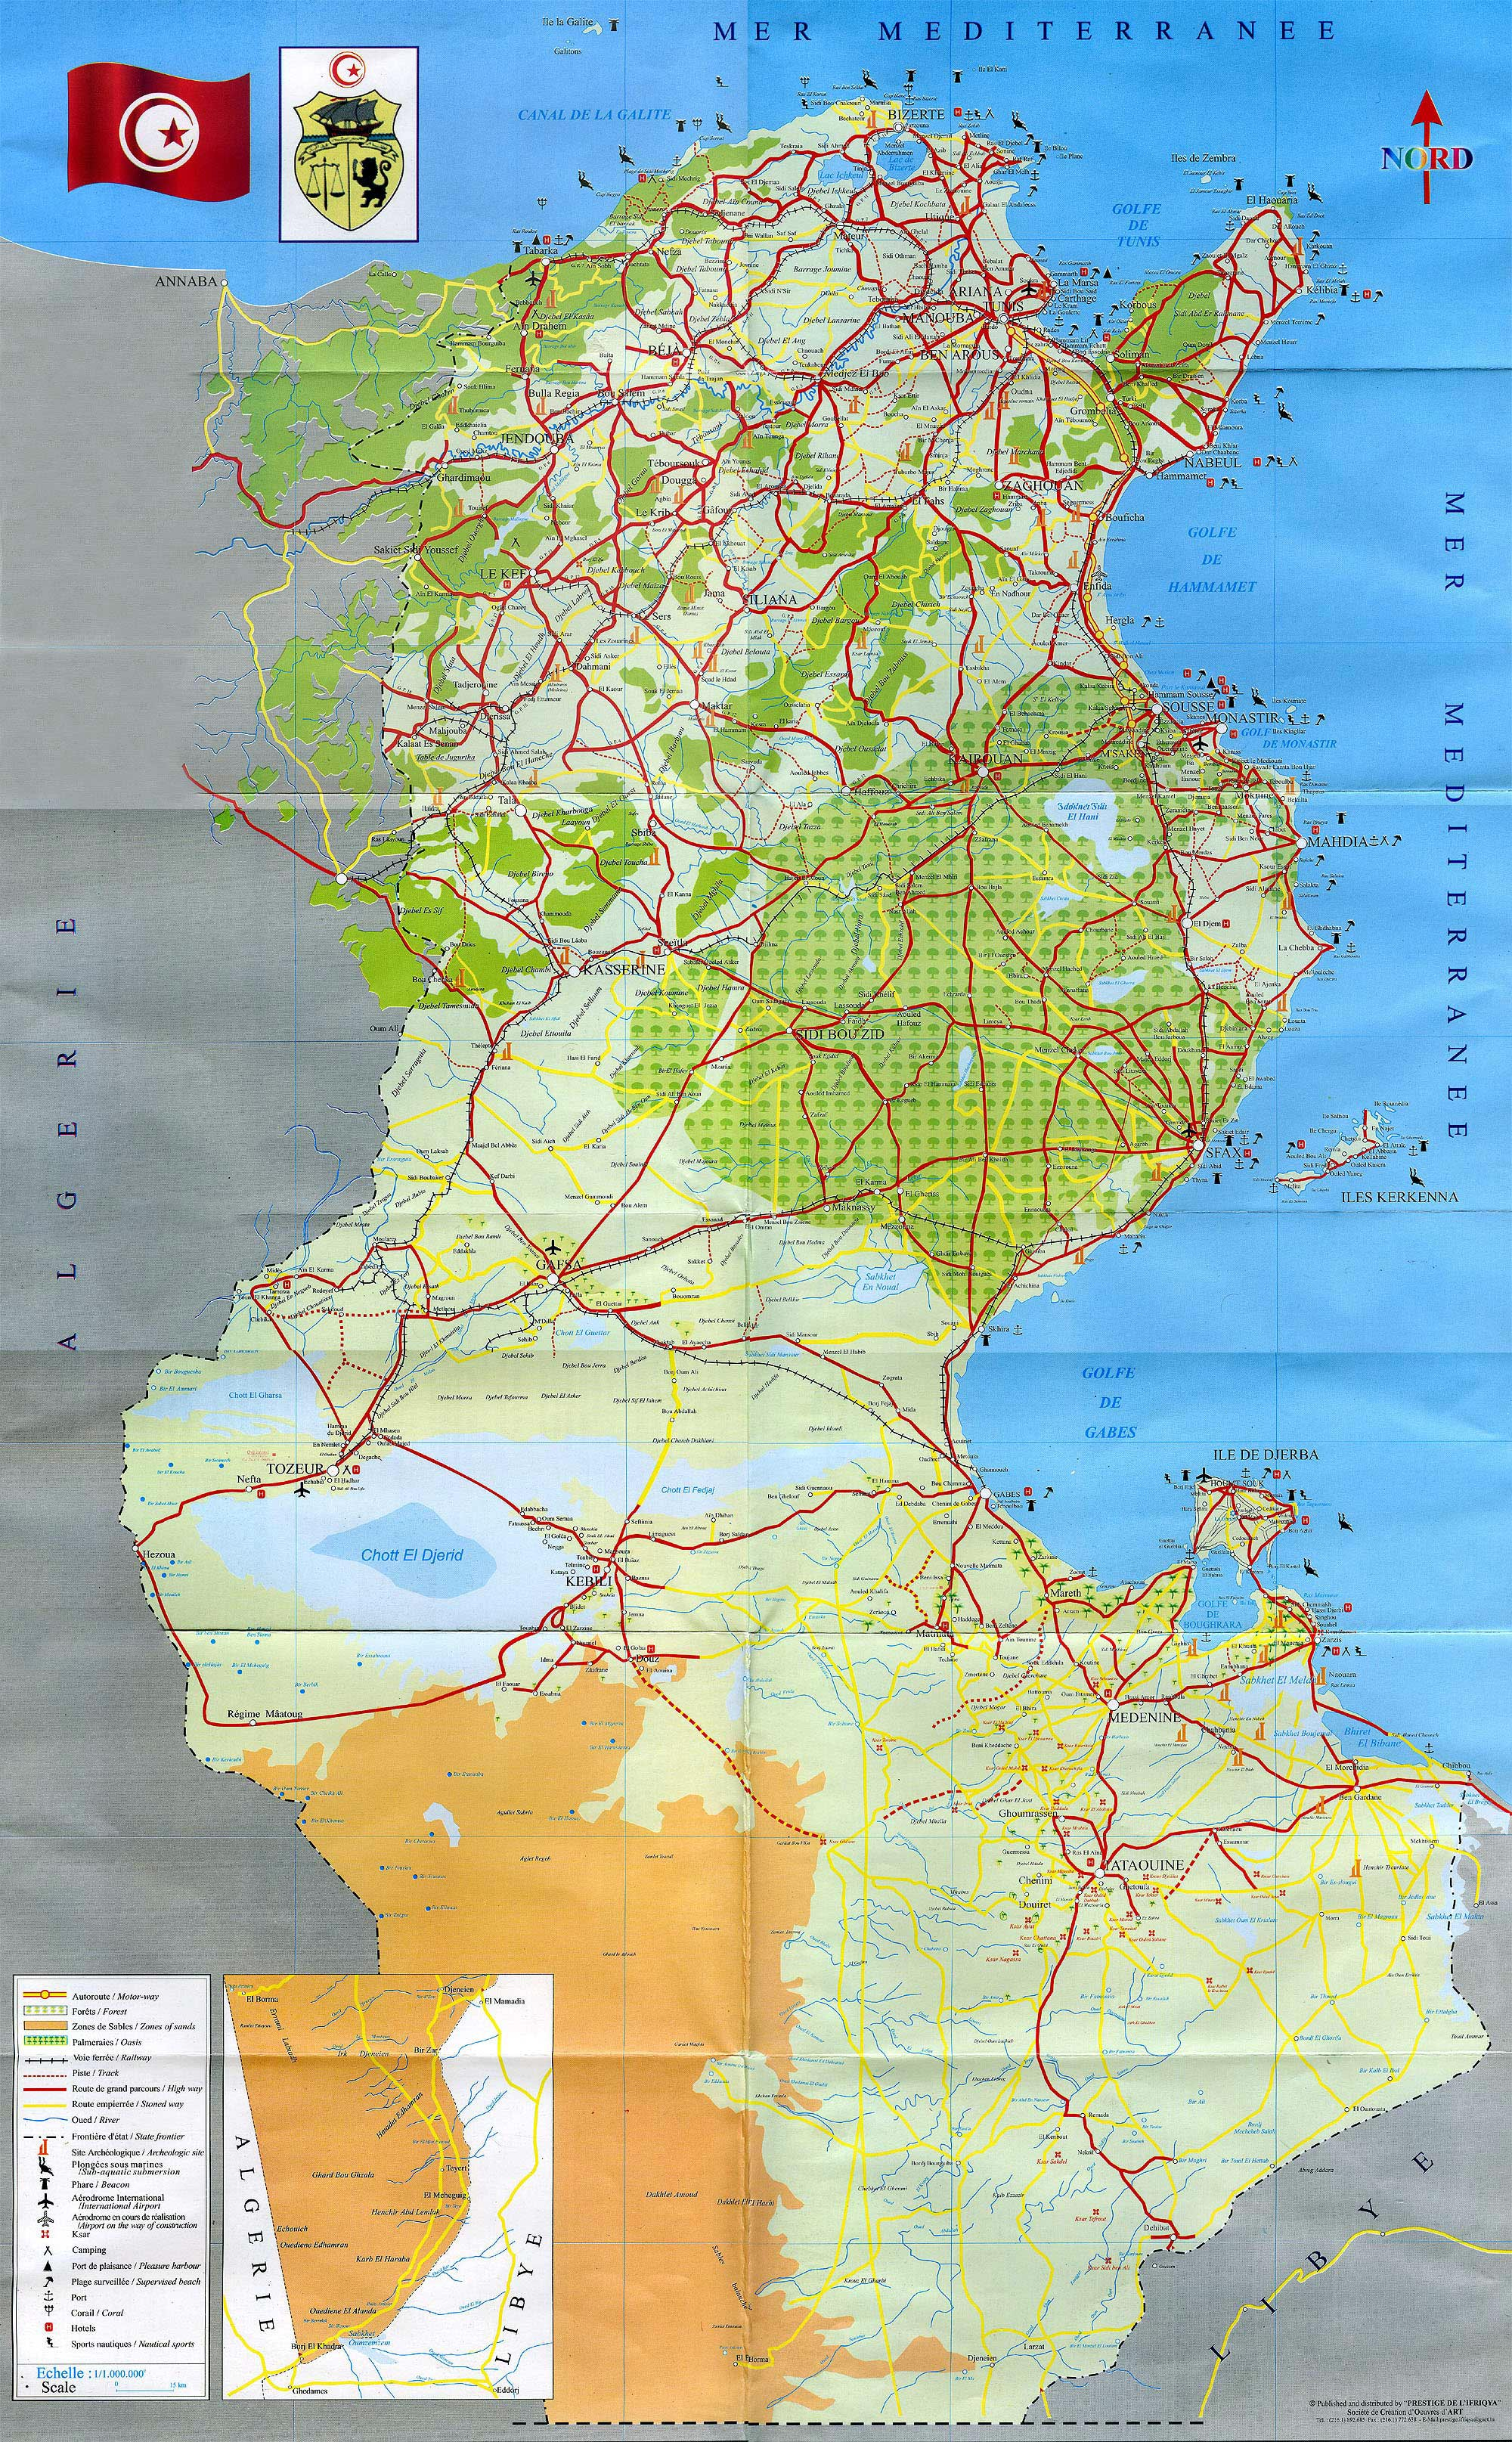 Maps Of Tunisia Map Library Maps Of The World - Tunisia cities small scale map